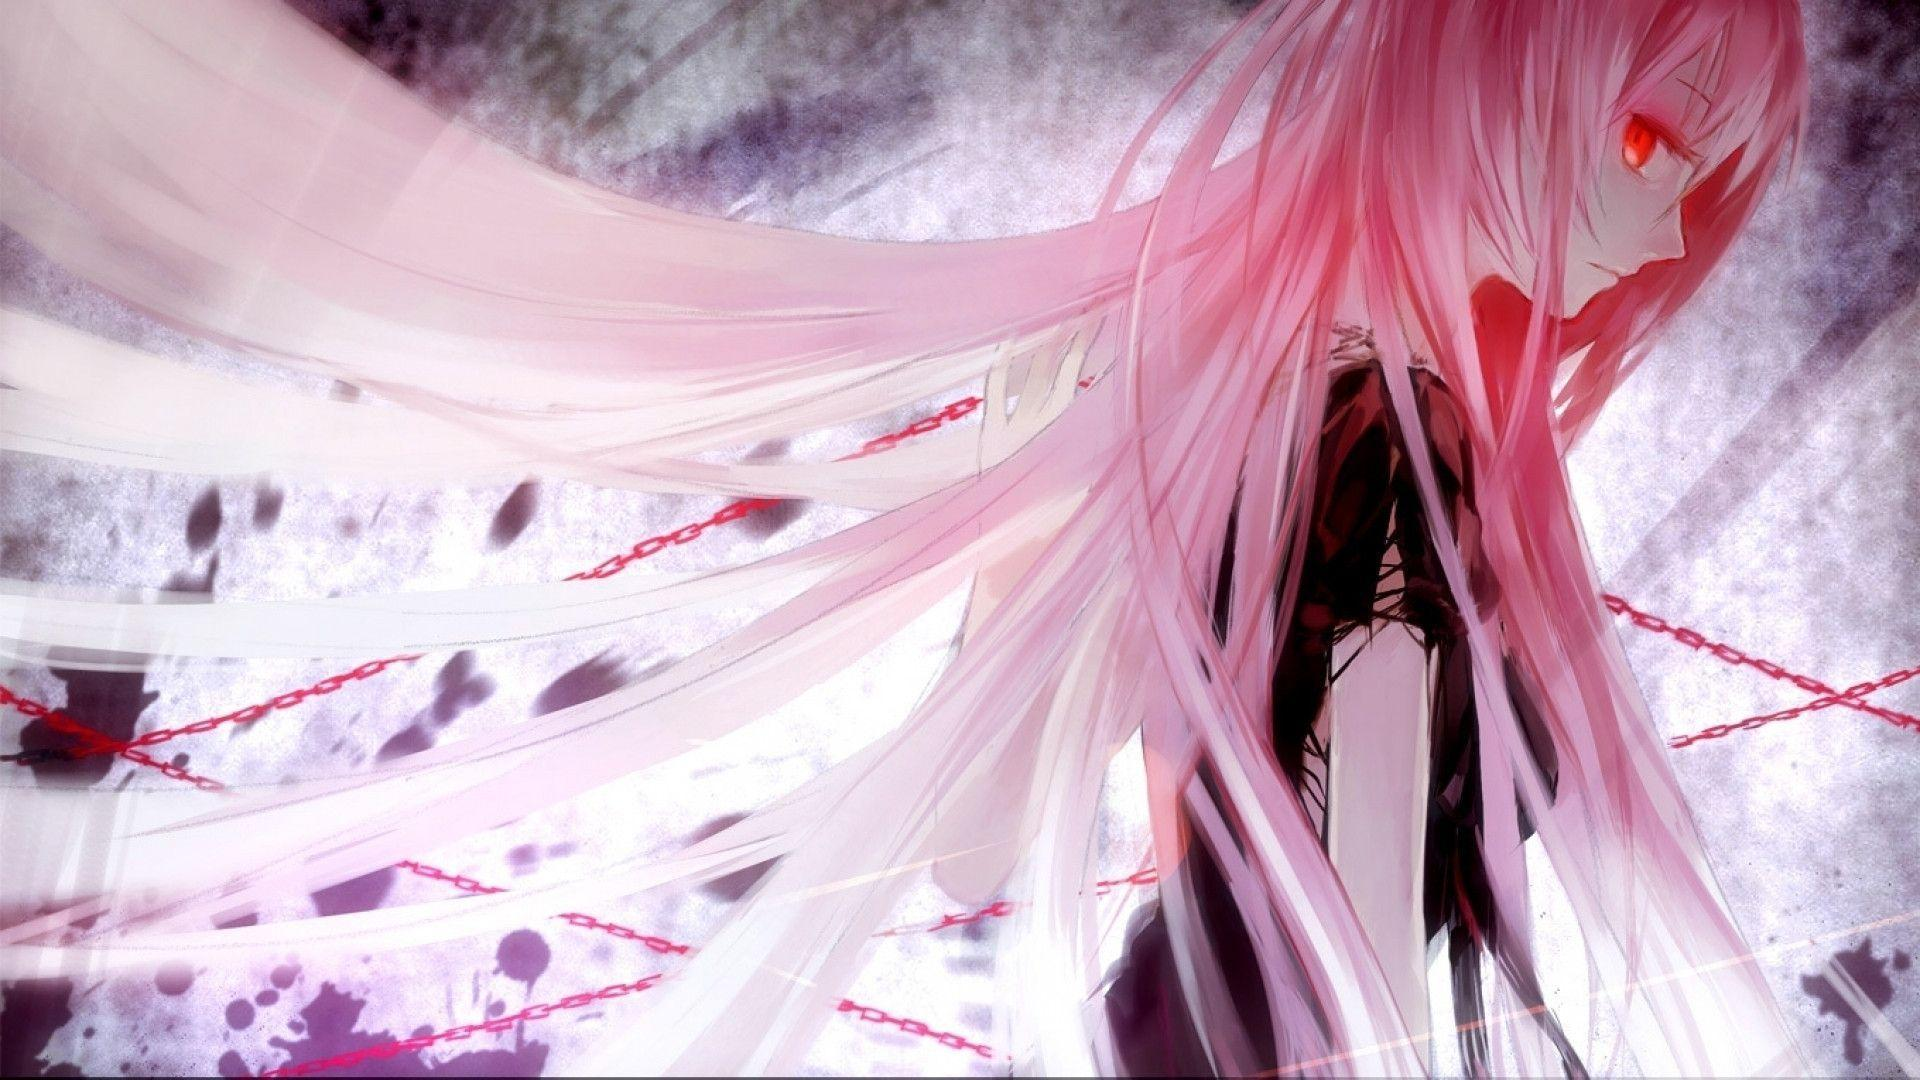 Mirai Nikki Wallpapers - Wallpaper Cave